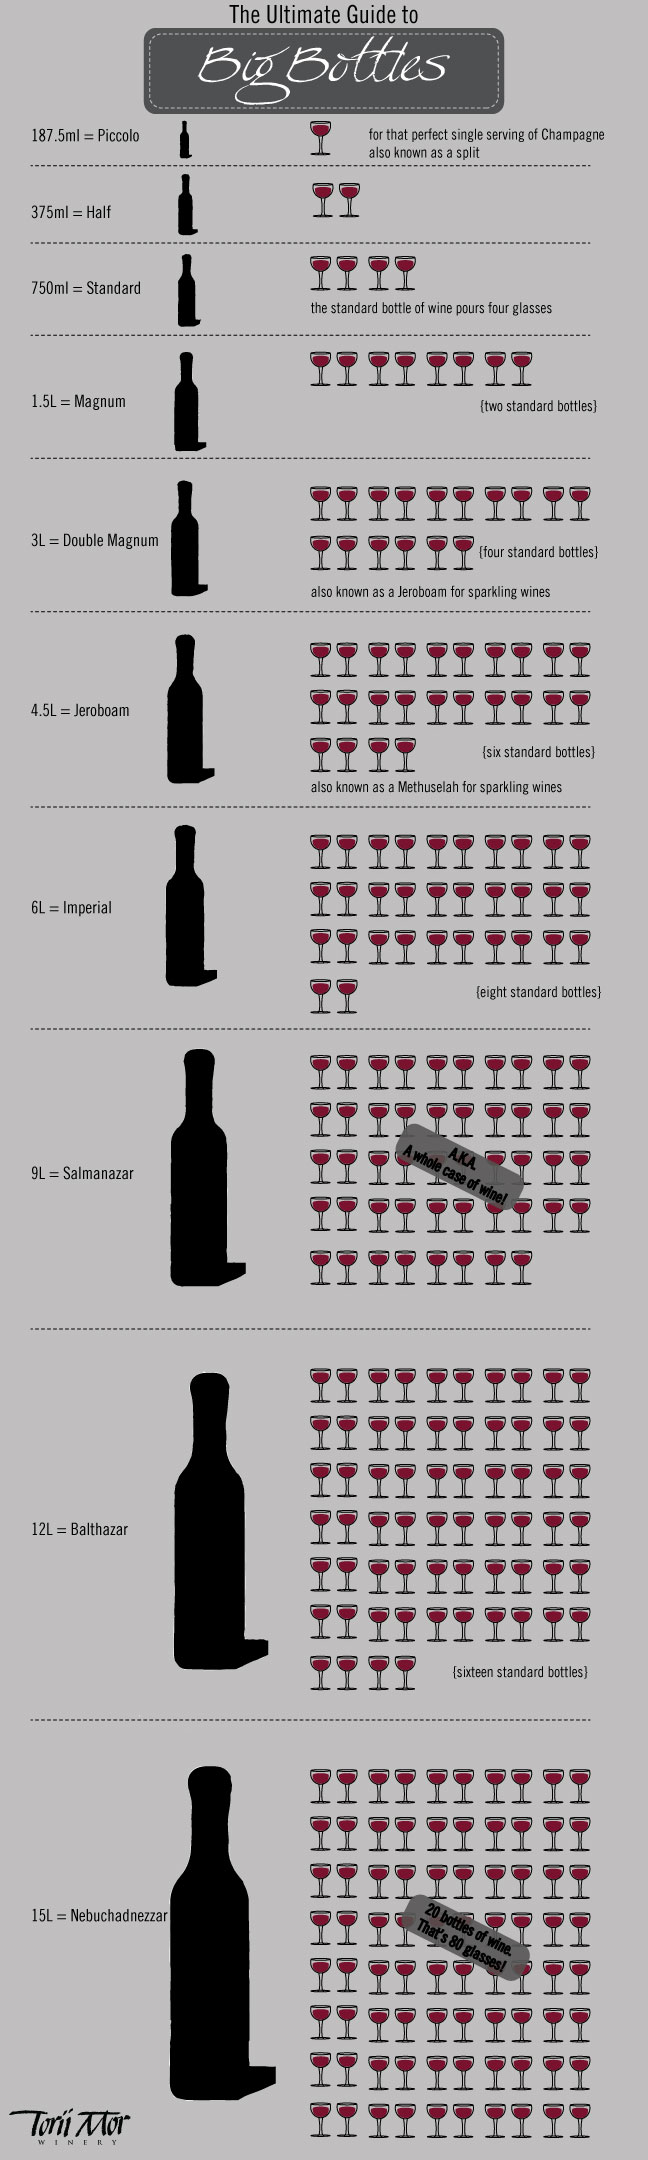 Torii Mor Winery - large format wines, magnums and big bottles can get pretty confusing. Here's the ultimate big bottle breakdown so you're never left questioning again. - Large format bottles, bottle size chart.